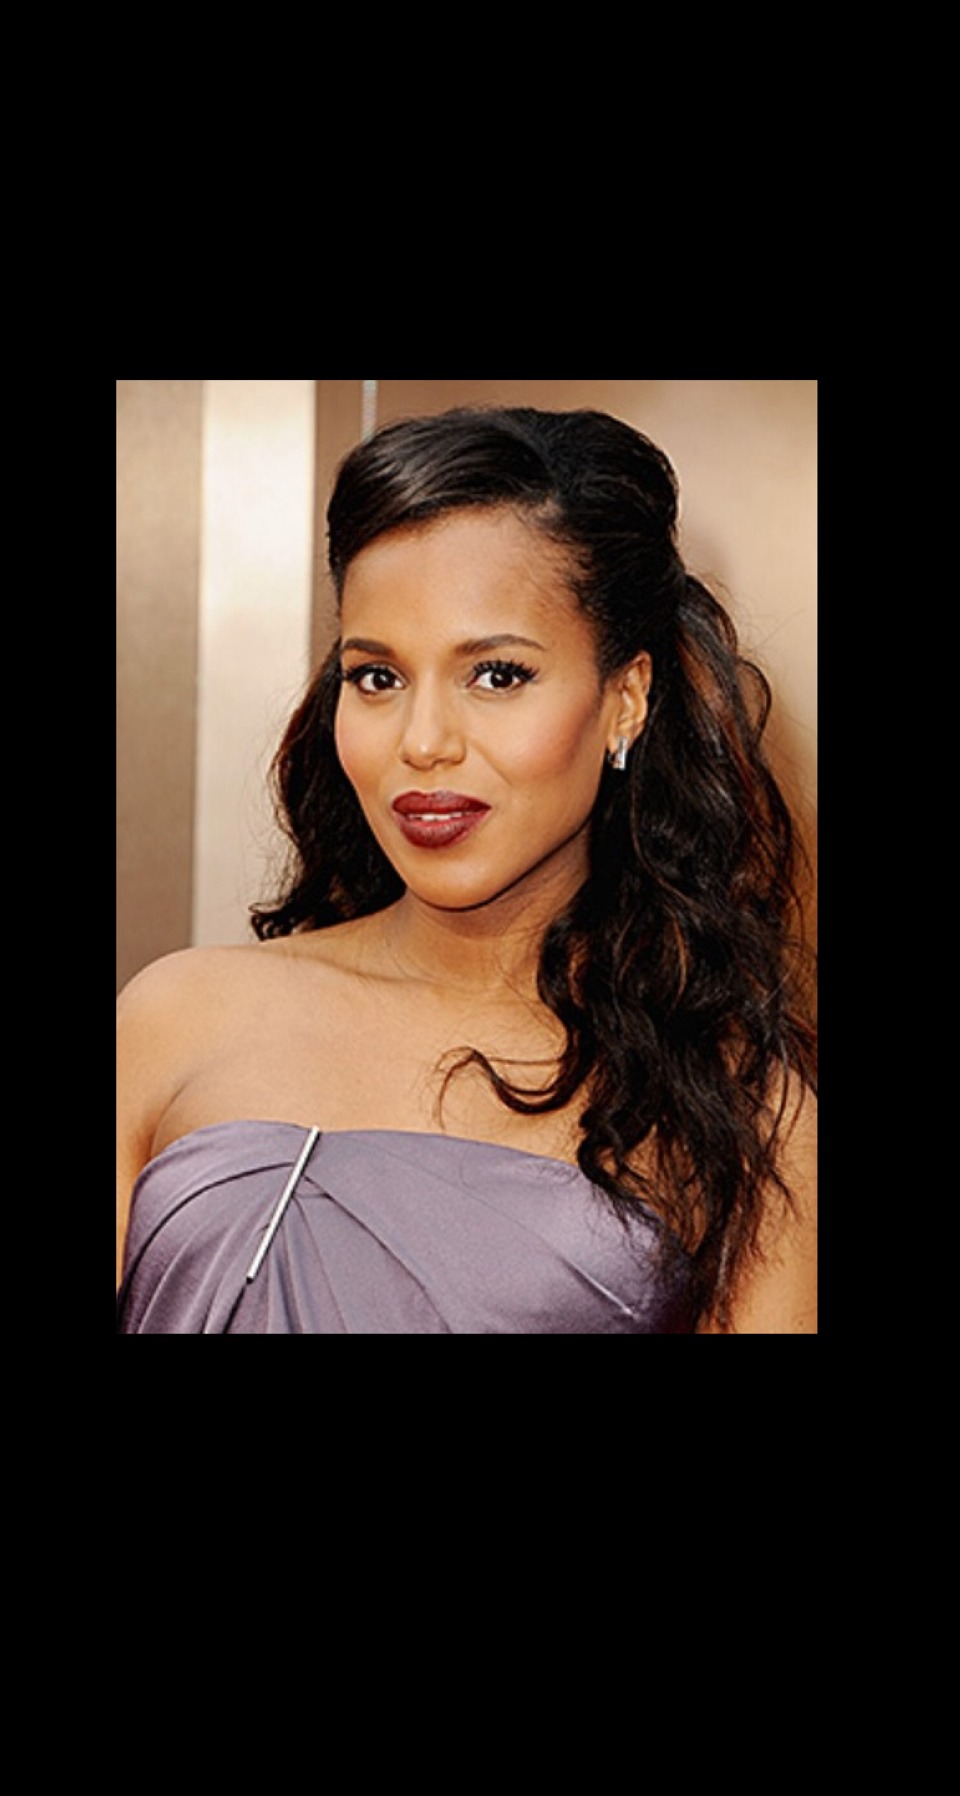 HALF UP WITH VOLUME Kerry Washington was stunning at the Oscars with a bold red lip, but we loved her half-up hairstyle with extra volume at the crown.